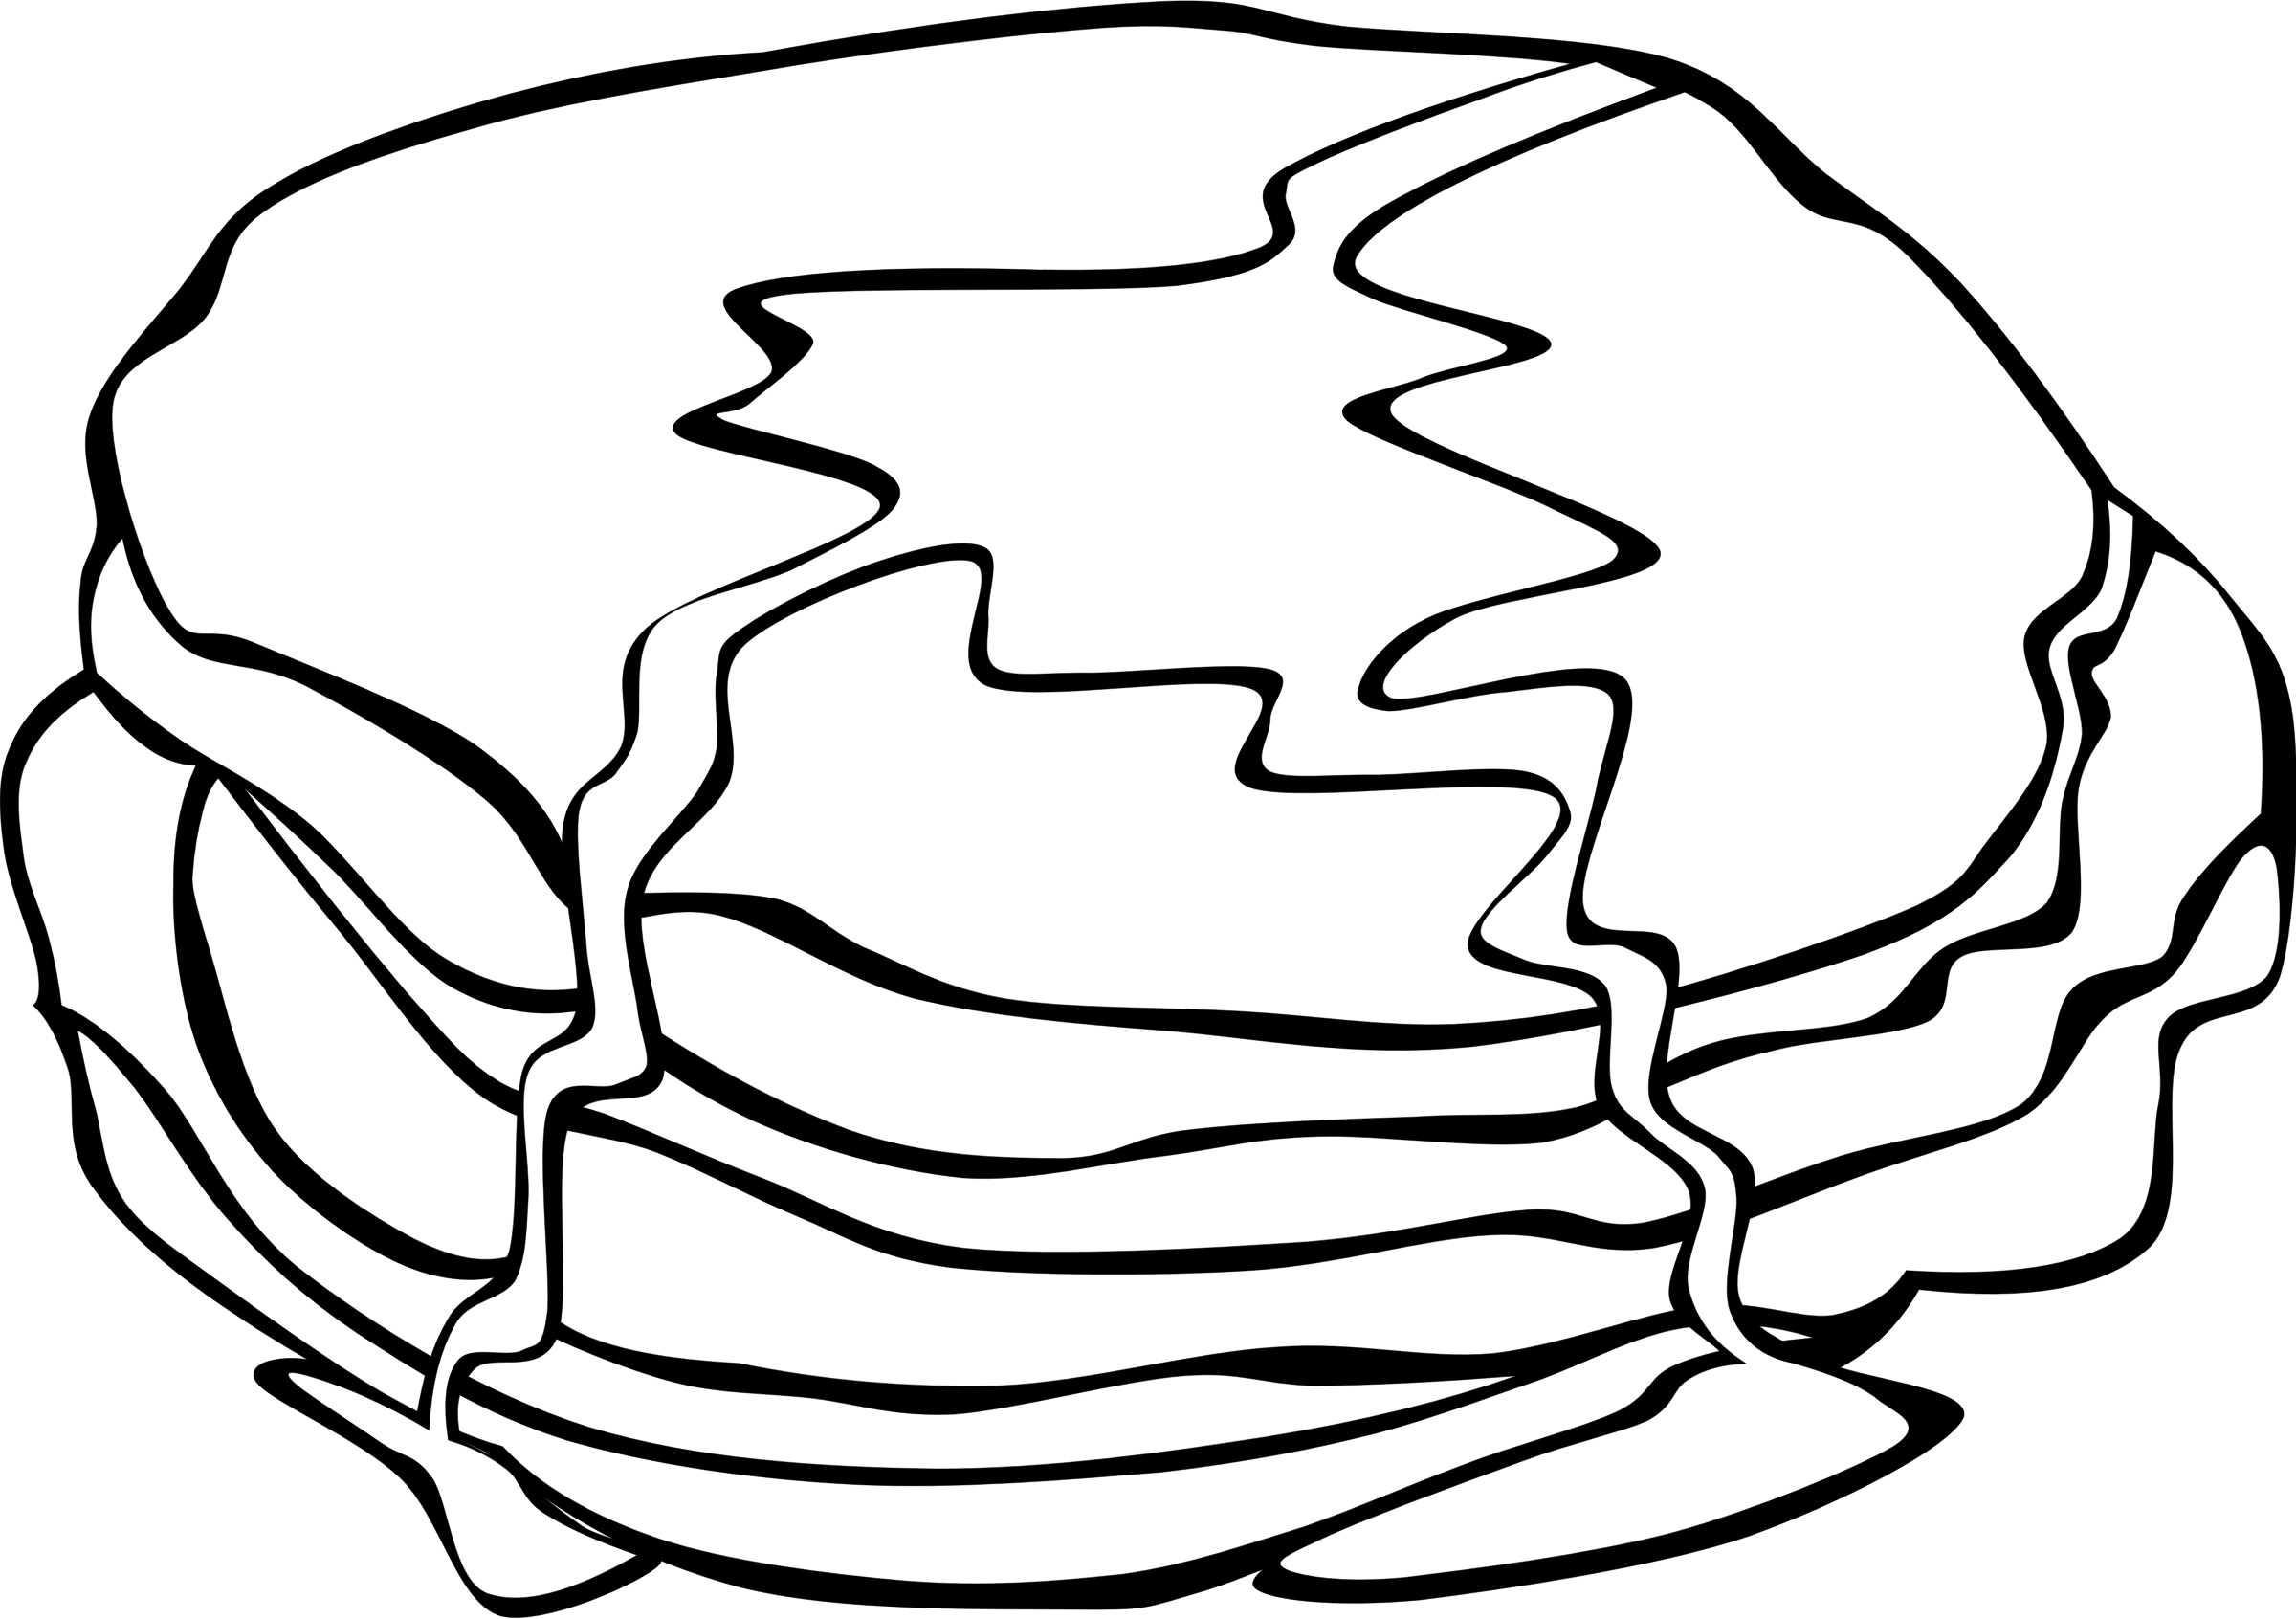 Food breakfast pancakes big. Fast clipart black and white